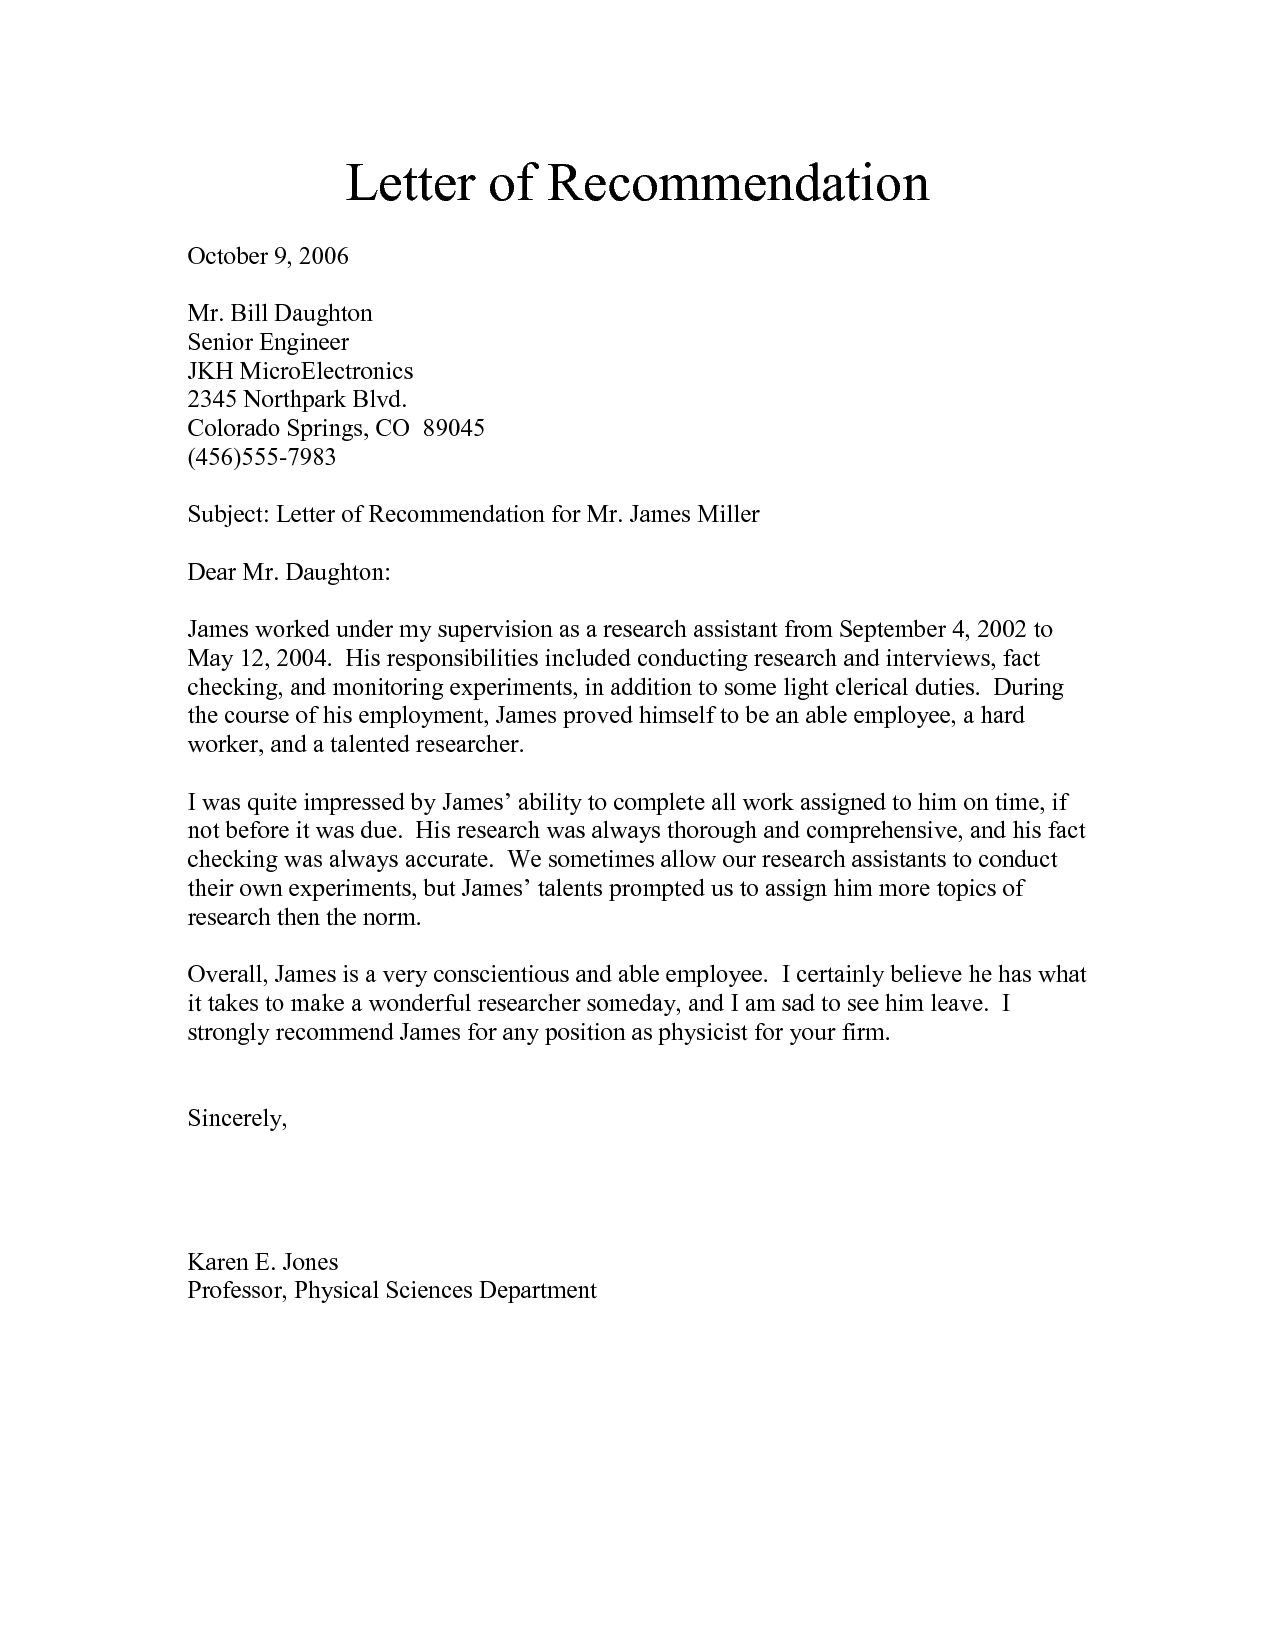 Army Letter Of Recommendation Exampleletter Of Recommendation